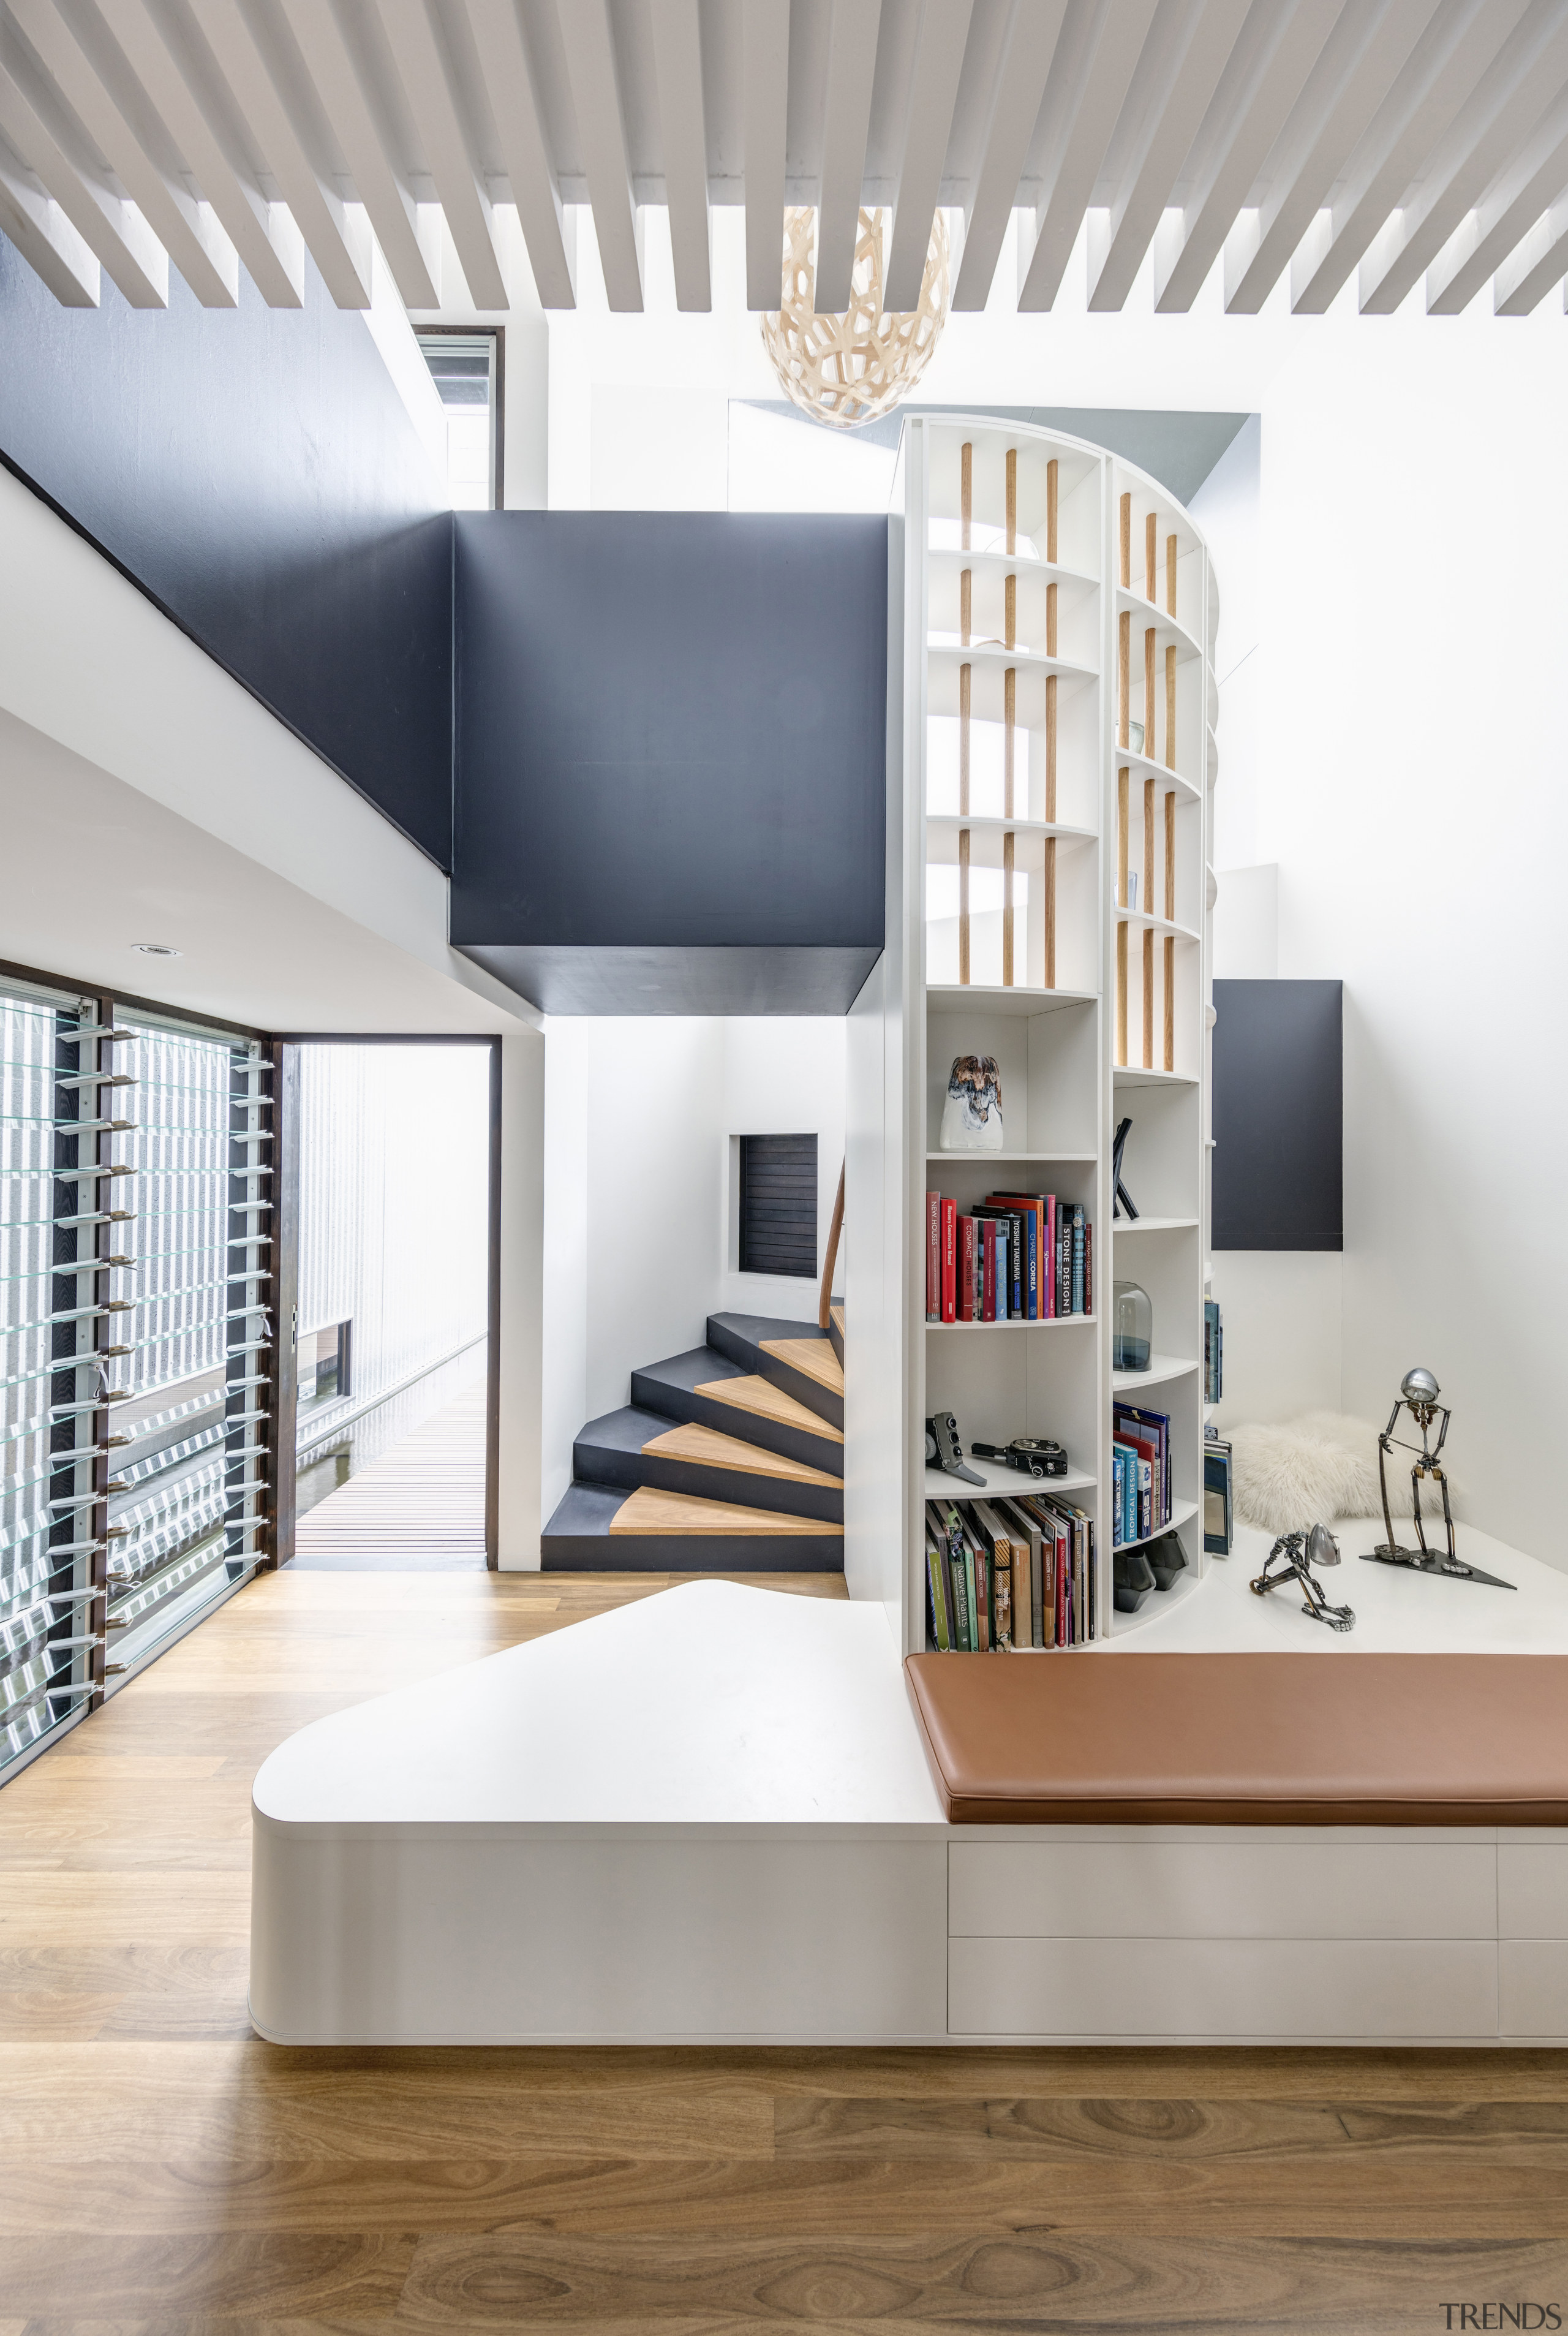 The spiral staircase in this family home by home, house, bookcase, design, floor, flooring, furniture, home, house, interior design, living room, shelf, shelving, space, stairs, CplusC Architectural Workshop